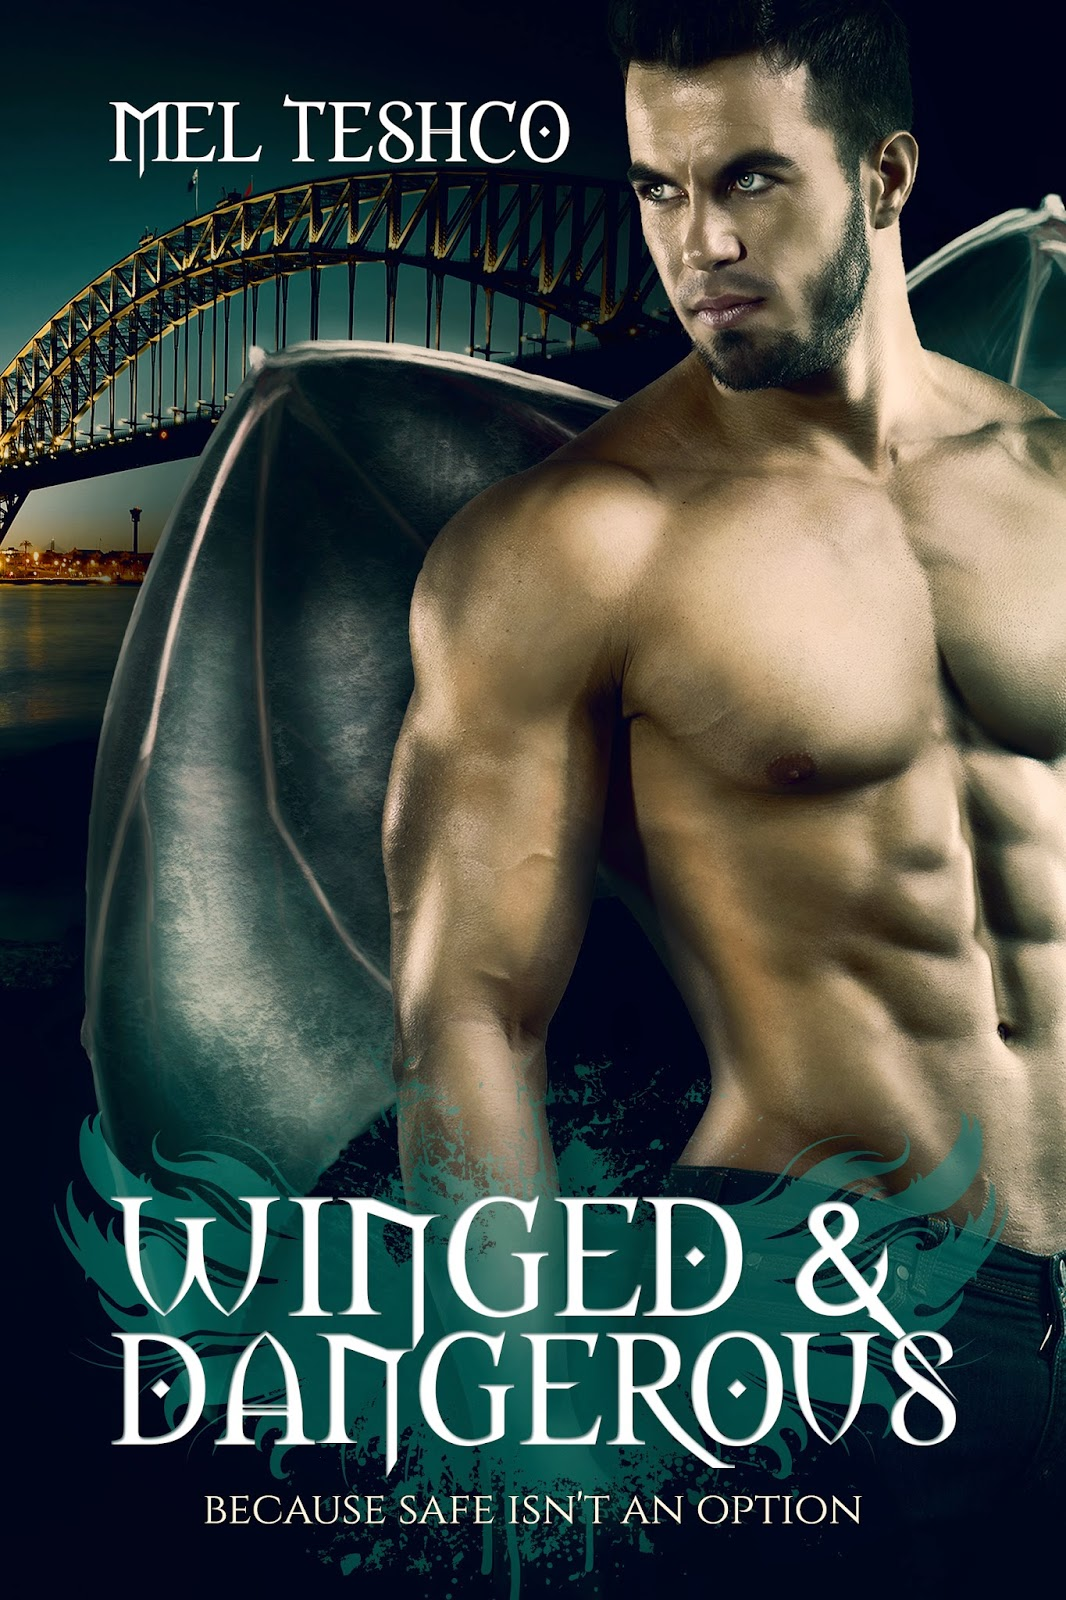 http://www.amazon.com/Winged-Dangerous-Mel-Teshco-ebook/dp/B00U7WJ00W/ref=sr_1_1?s=digital-text&ie=UTF8&qid=1425529305&sr=1-1&keywords=winged+and+dangerous